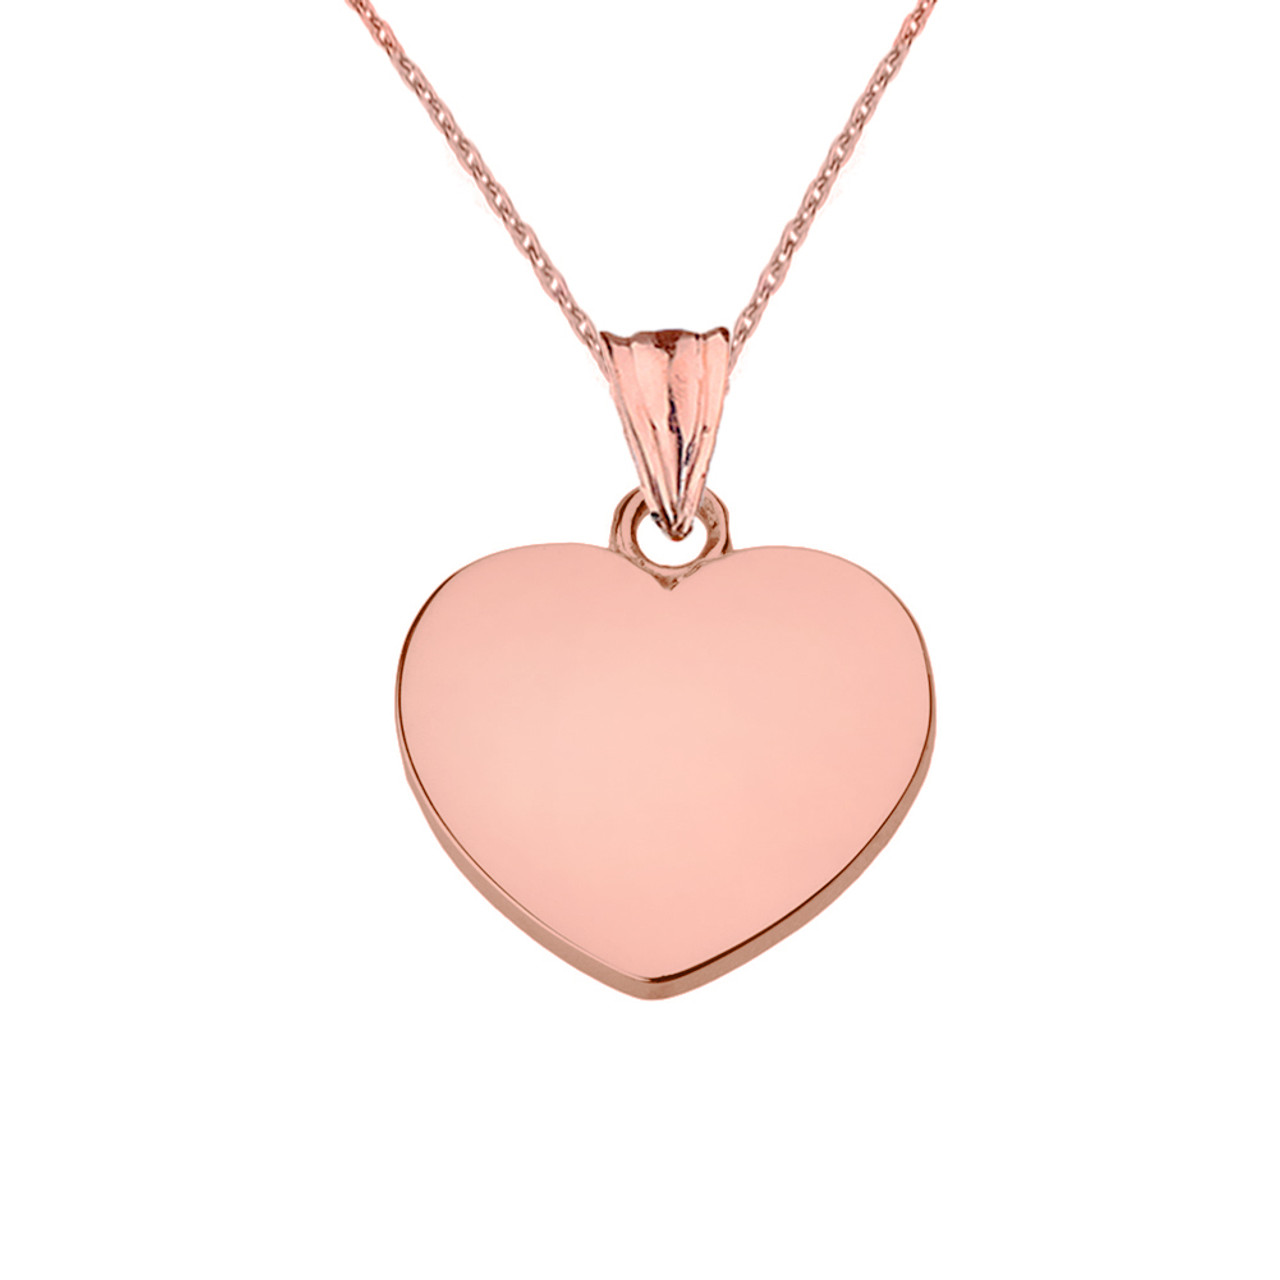 e45521c4a9b41 Solid Rose Gold Simple Heart Pendant Necklace